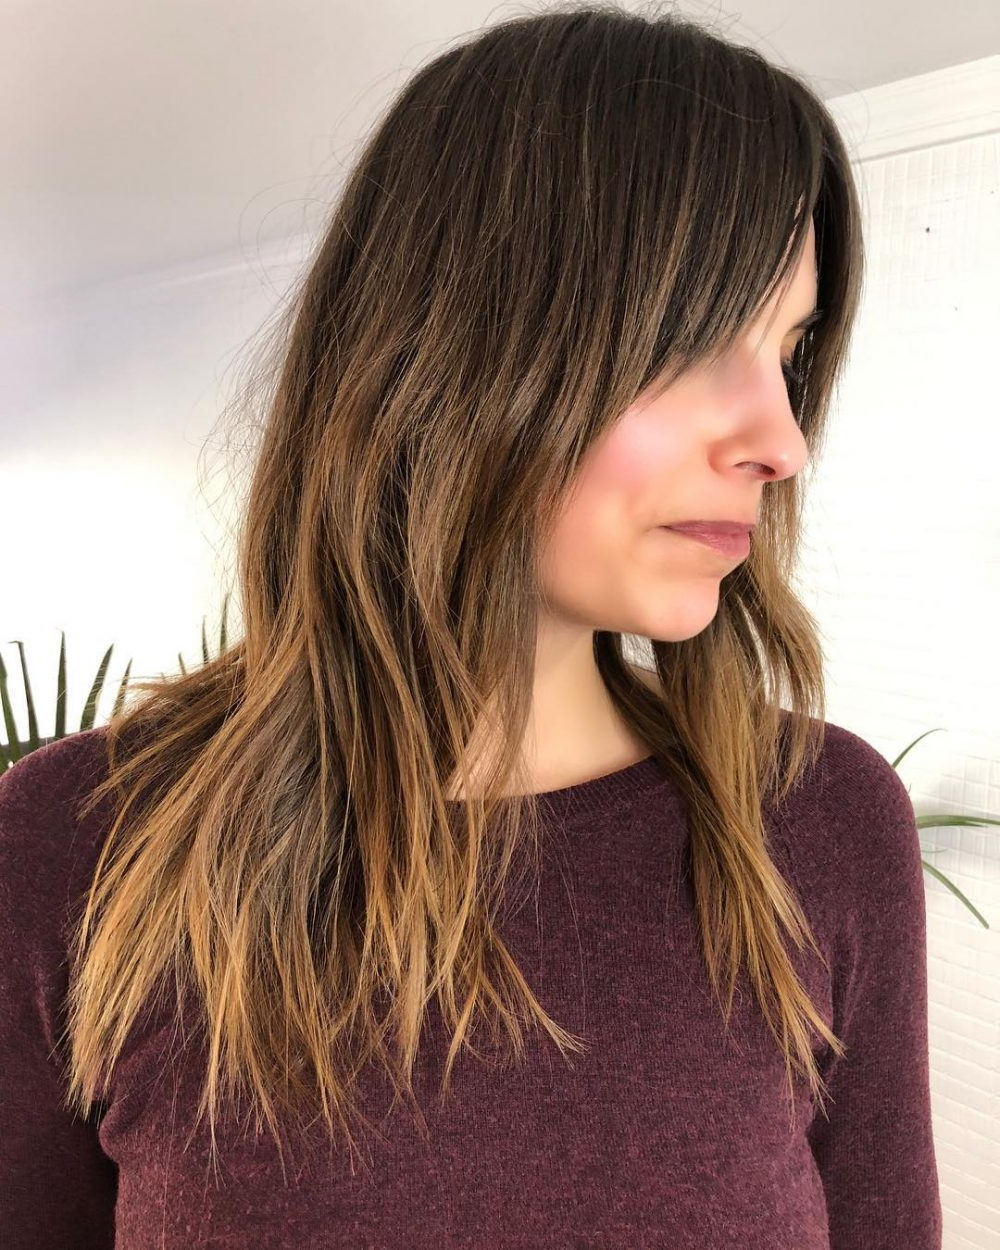 Long Shag Haircuts: 36 Examples For 2019 Within Favorite Frizzy Choppy Long Shag Hairstyles (View 13 of 20)